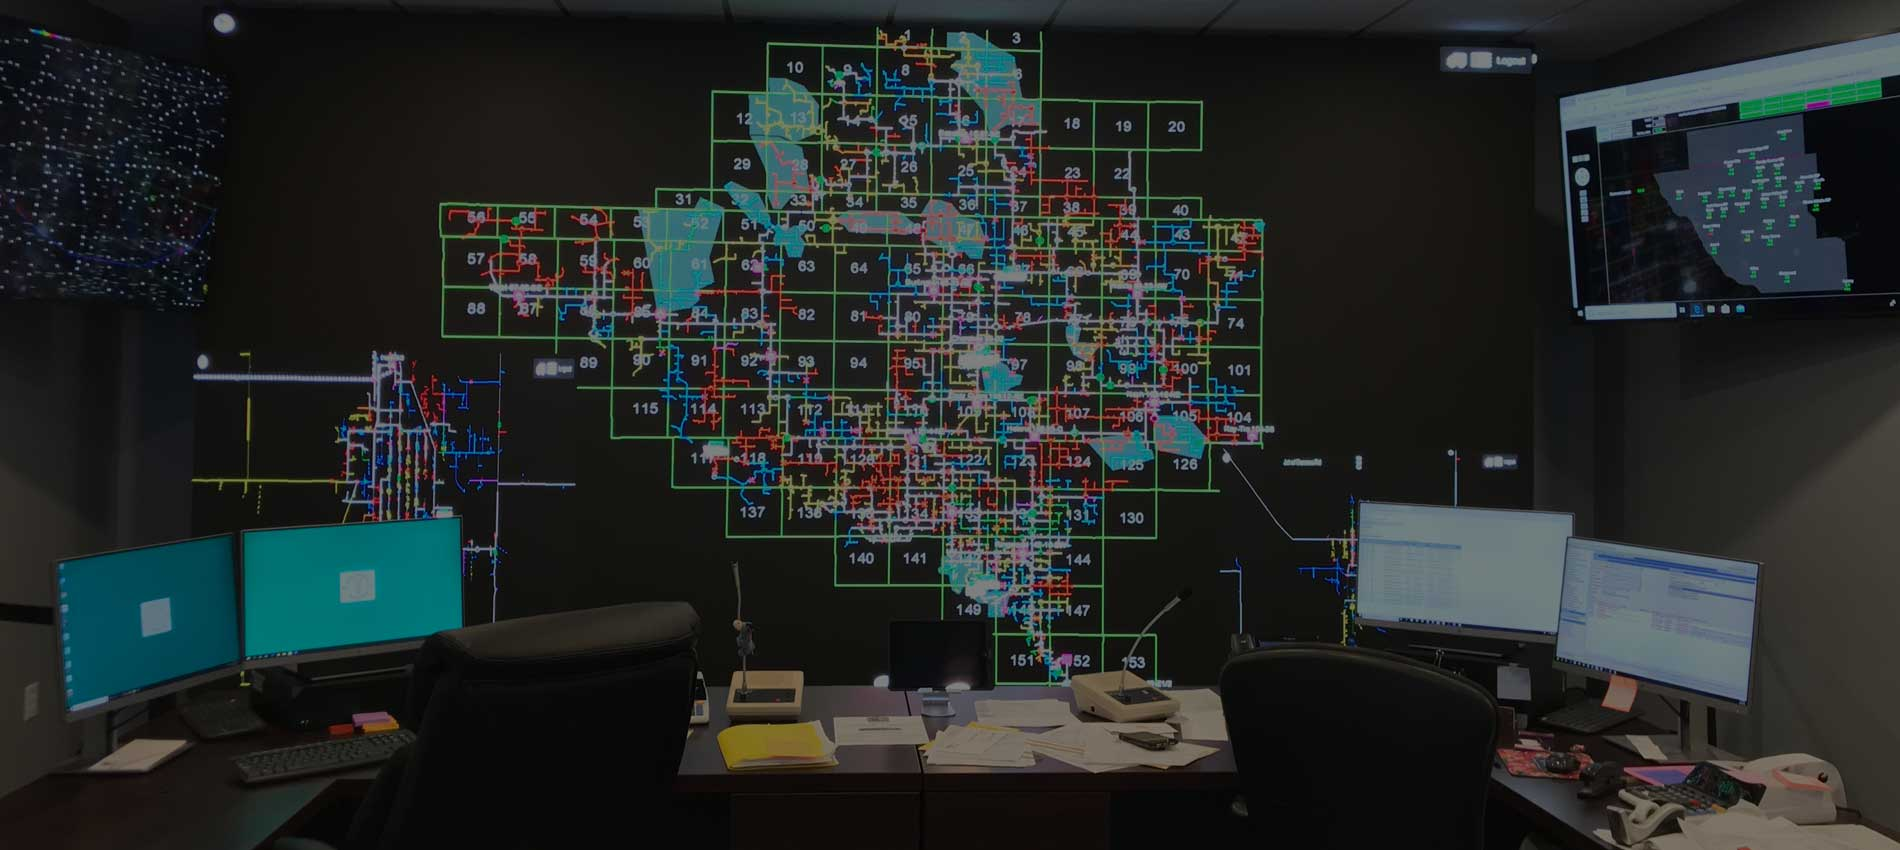 Video Walls for Corporate Environments by Vox Audio Visual